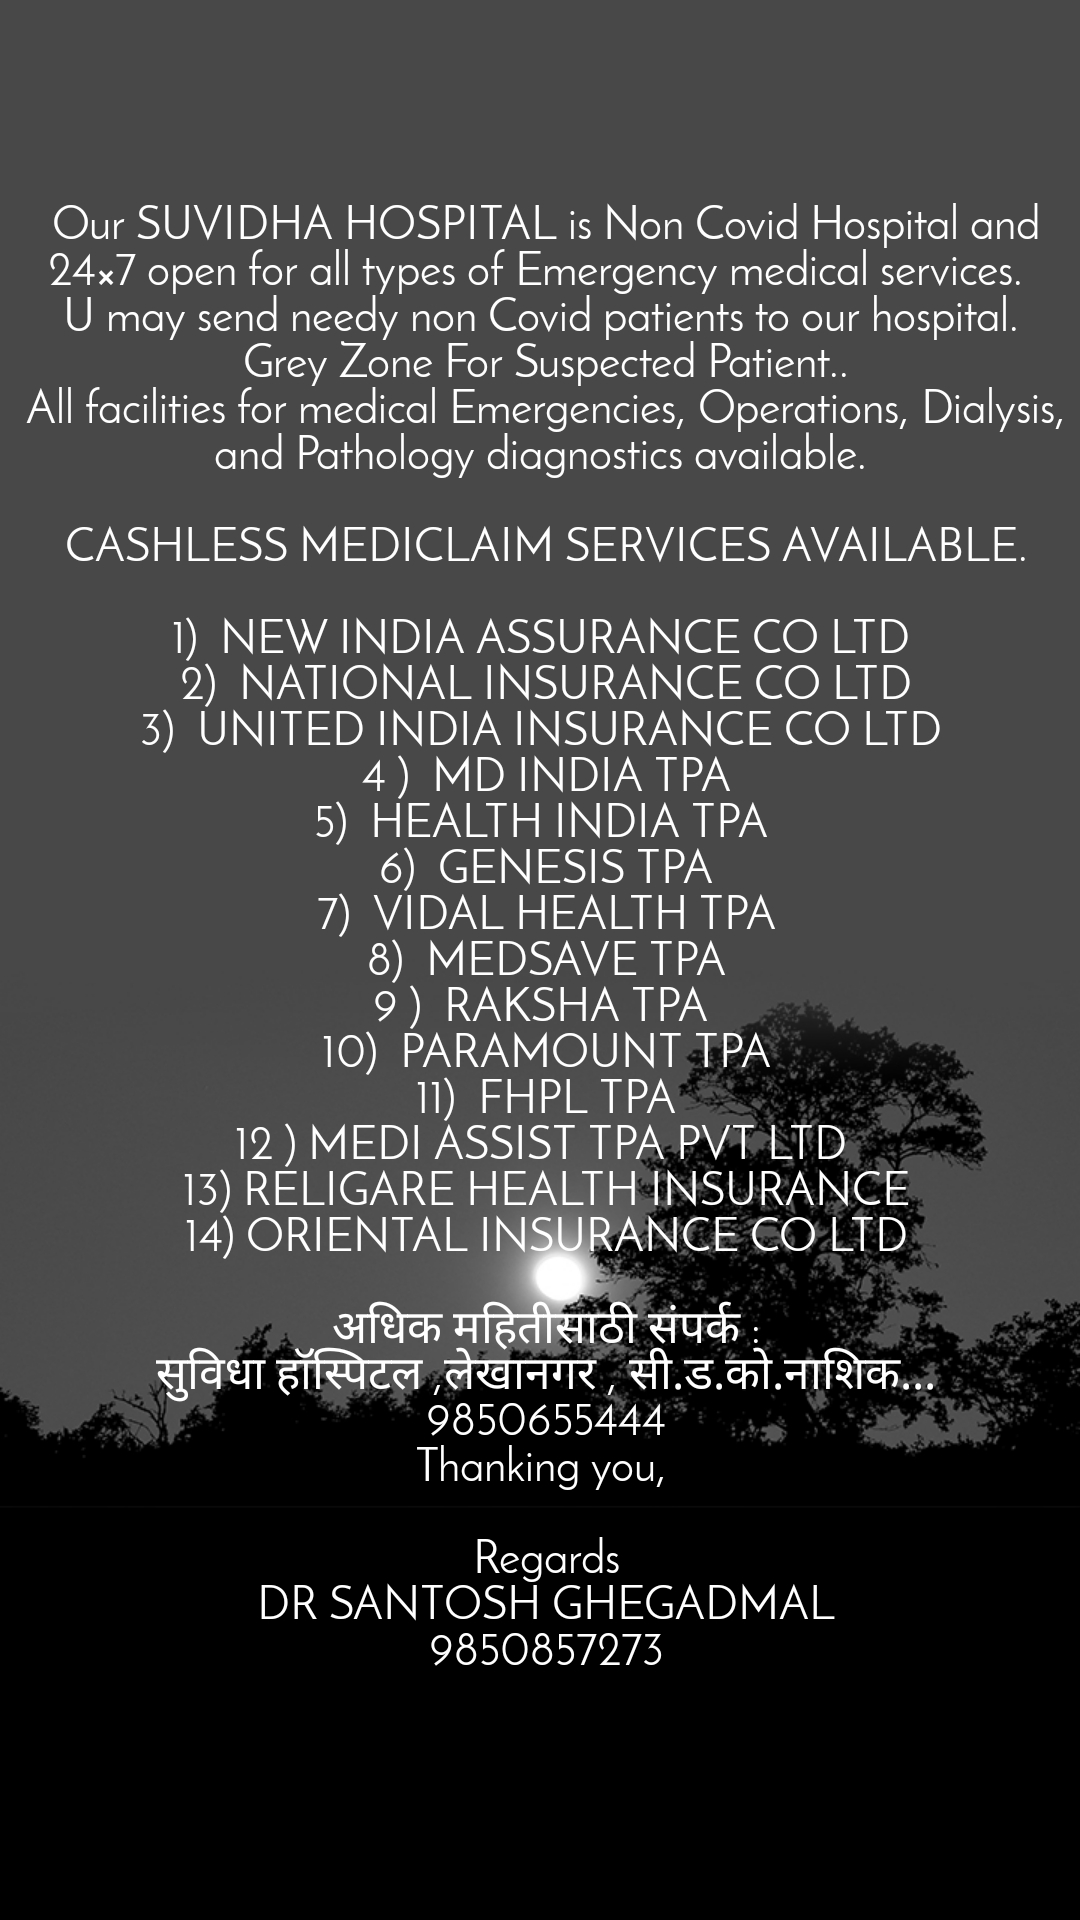 Our SUVIDHA HOSPITAL is Non Covid Hospital and 24×7 open for all types of Emergency medical services.   U may send needy non Covid patients to our hospital.  Grey Zone For Suspected Patient.. All facilities for medical Emergencies, Operations, Dialysis, and Pathology diagnostics available.   CASHLESS MEDICLAIM SERVICES AVAILABLE.  1) NEW INDIA ASSURANCE CO LTD  2) NATIONAL INSURANCE CO LTD 3) UNITED INDIA INSURANCE CO LTD  4 ) MD INDIA TPA 5) HEALTH INDIA TPA  6) GENESIS TPA 7) VIDAL HEALTH TPA 8) MEDSAVE TPA 9 ) RAKSHA TPA  10) PARAMOUNT TPA 11) FHPL TPA 12 ) MEDI ASSIST TPA PVT LTD  13) RELIGARE HEALTH INSURANCE 14) ORIENTAL INSURANCE CO LTD  अधिक महितीसाठी संपर्क : सुविधा हॉस्पिटल ,लेखानगर , सी.ड.को.नाशिक... 9850655444 Thanking you,   Regards DR SANTOSH GHEGADMAL 9850857273